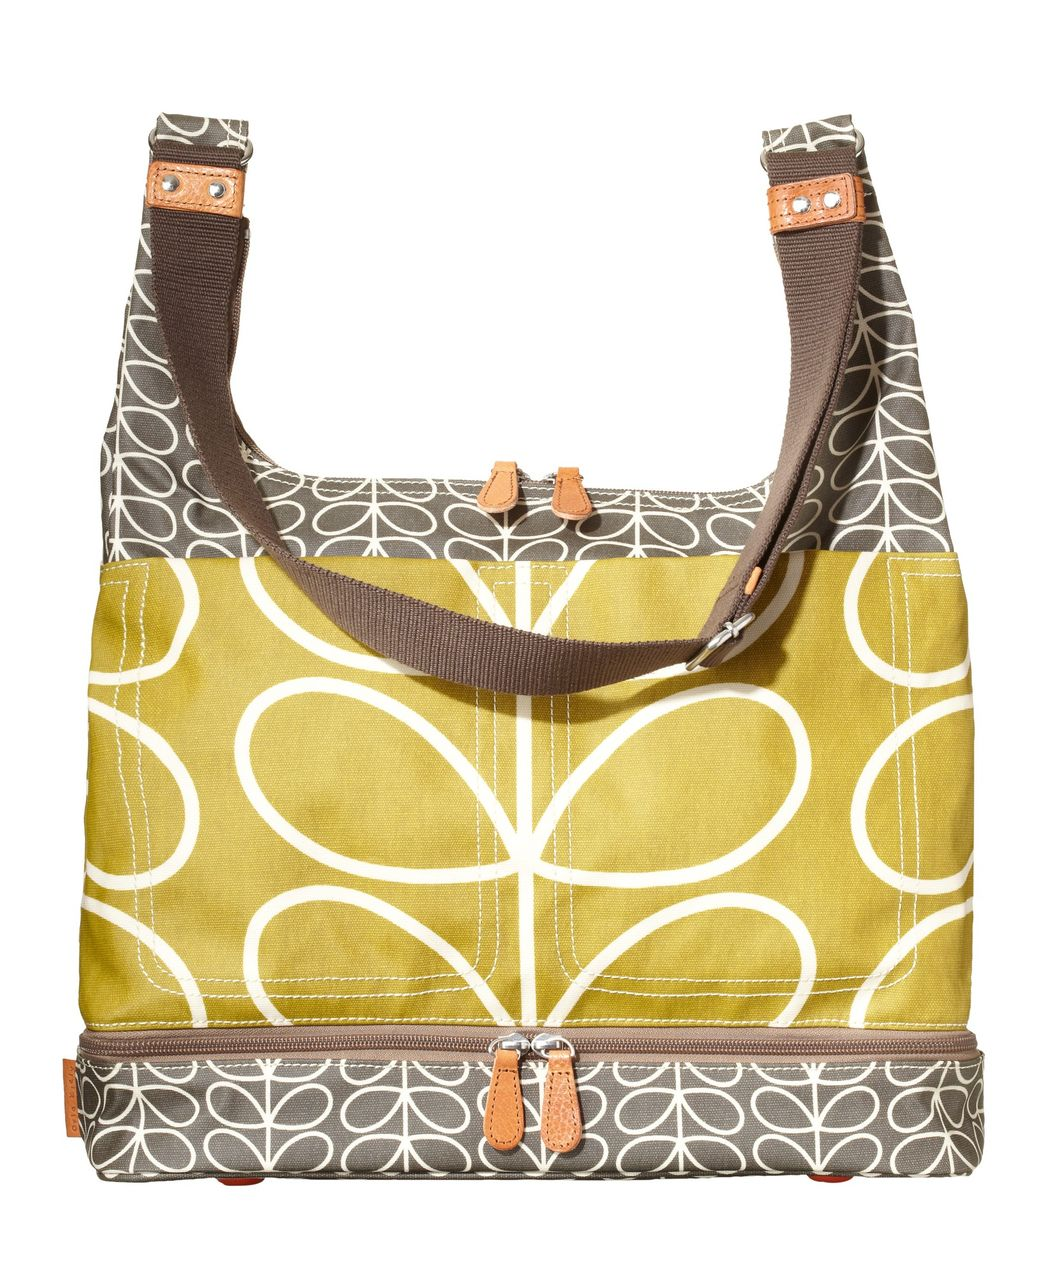 f5d6bb7a5e6 Orla Kiely Changing Bag - Olive Green - Changing Bags - Mamas   Papas